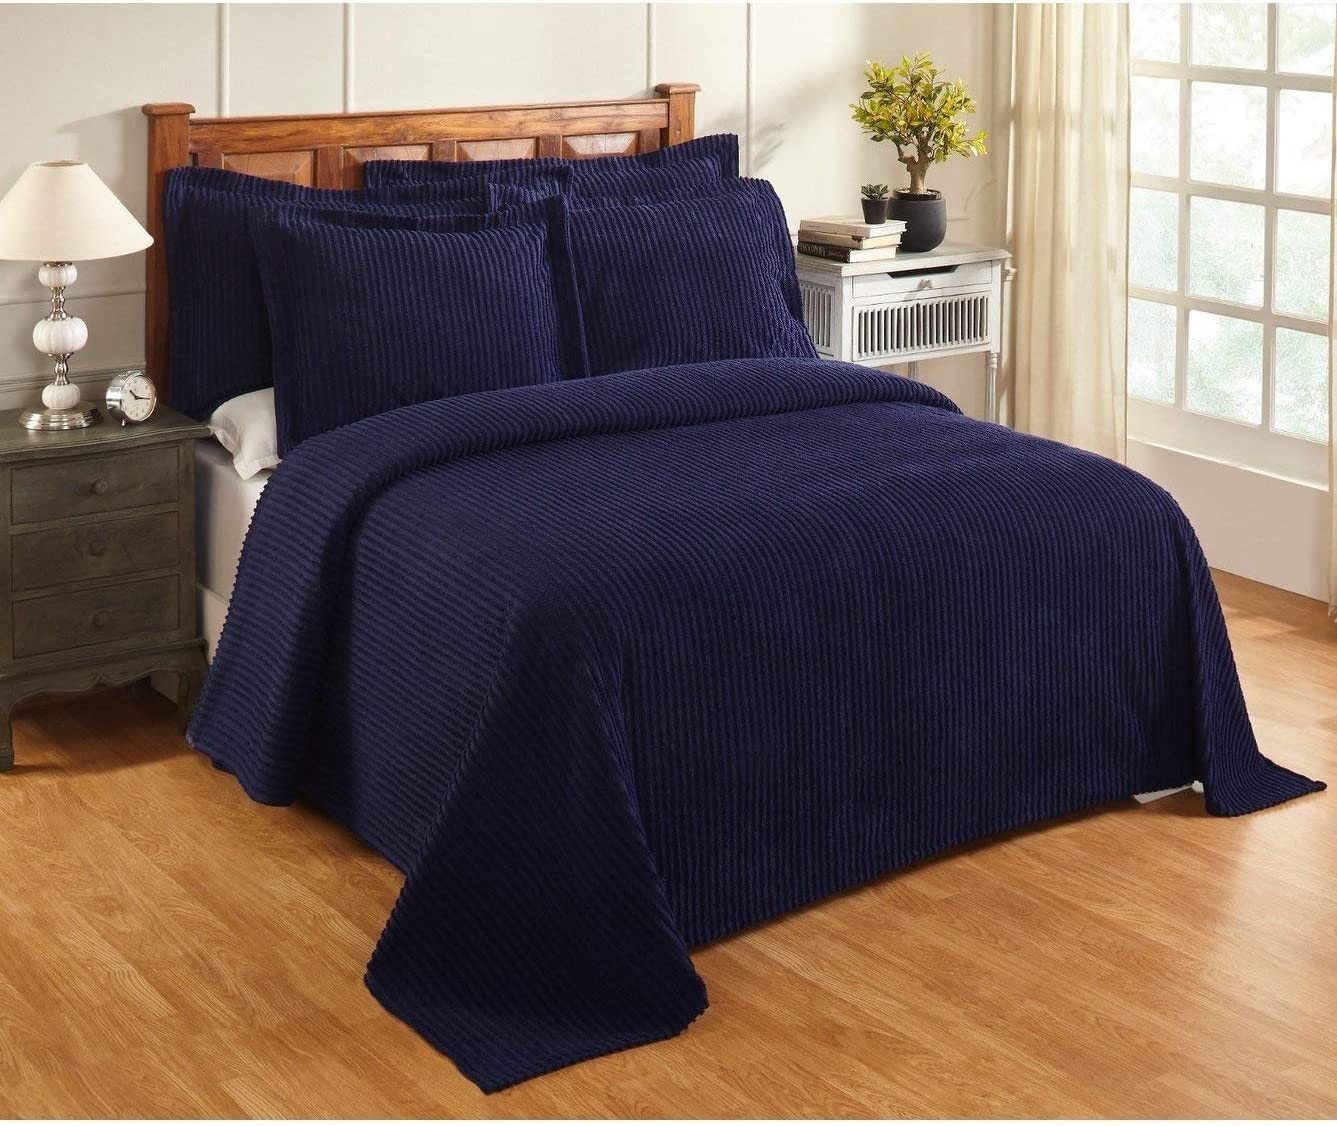 MISC Oversized Navy New product! New type Albuquerque Mall Blue Chenille Bedspread 120x110 Vintage King